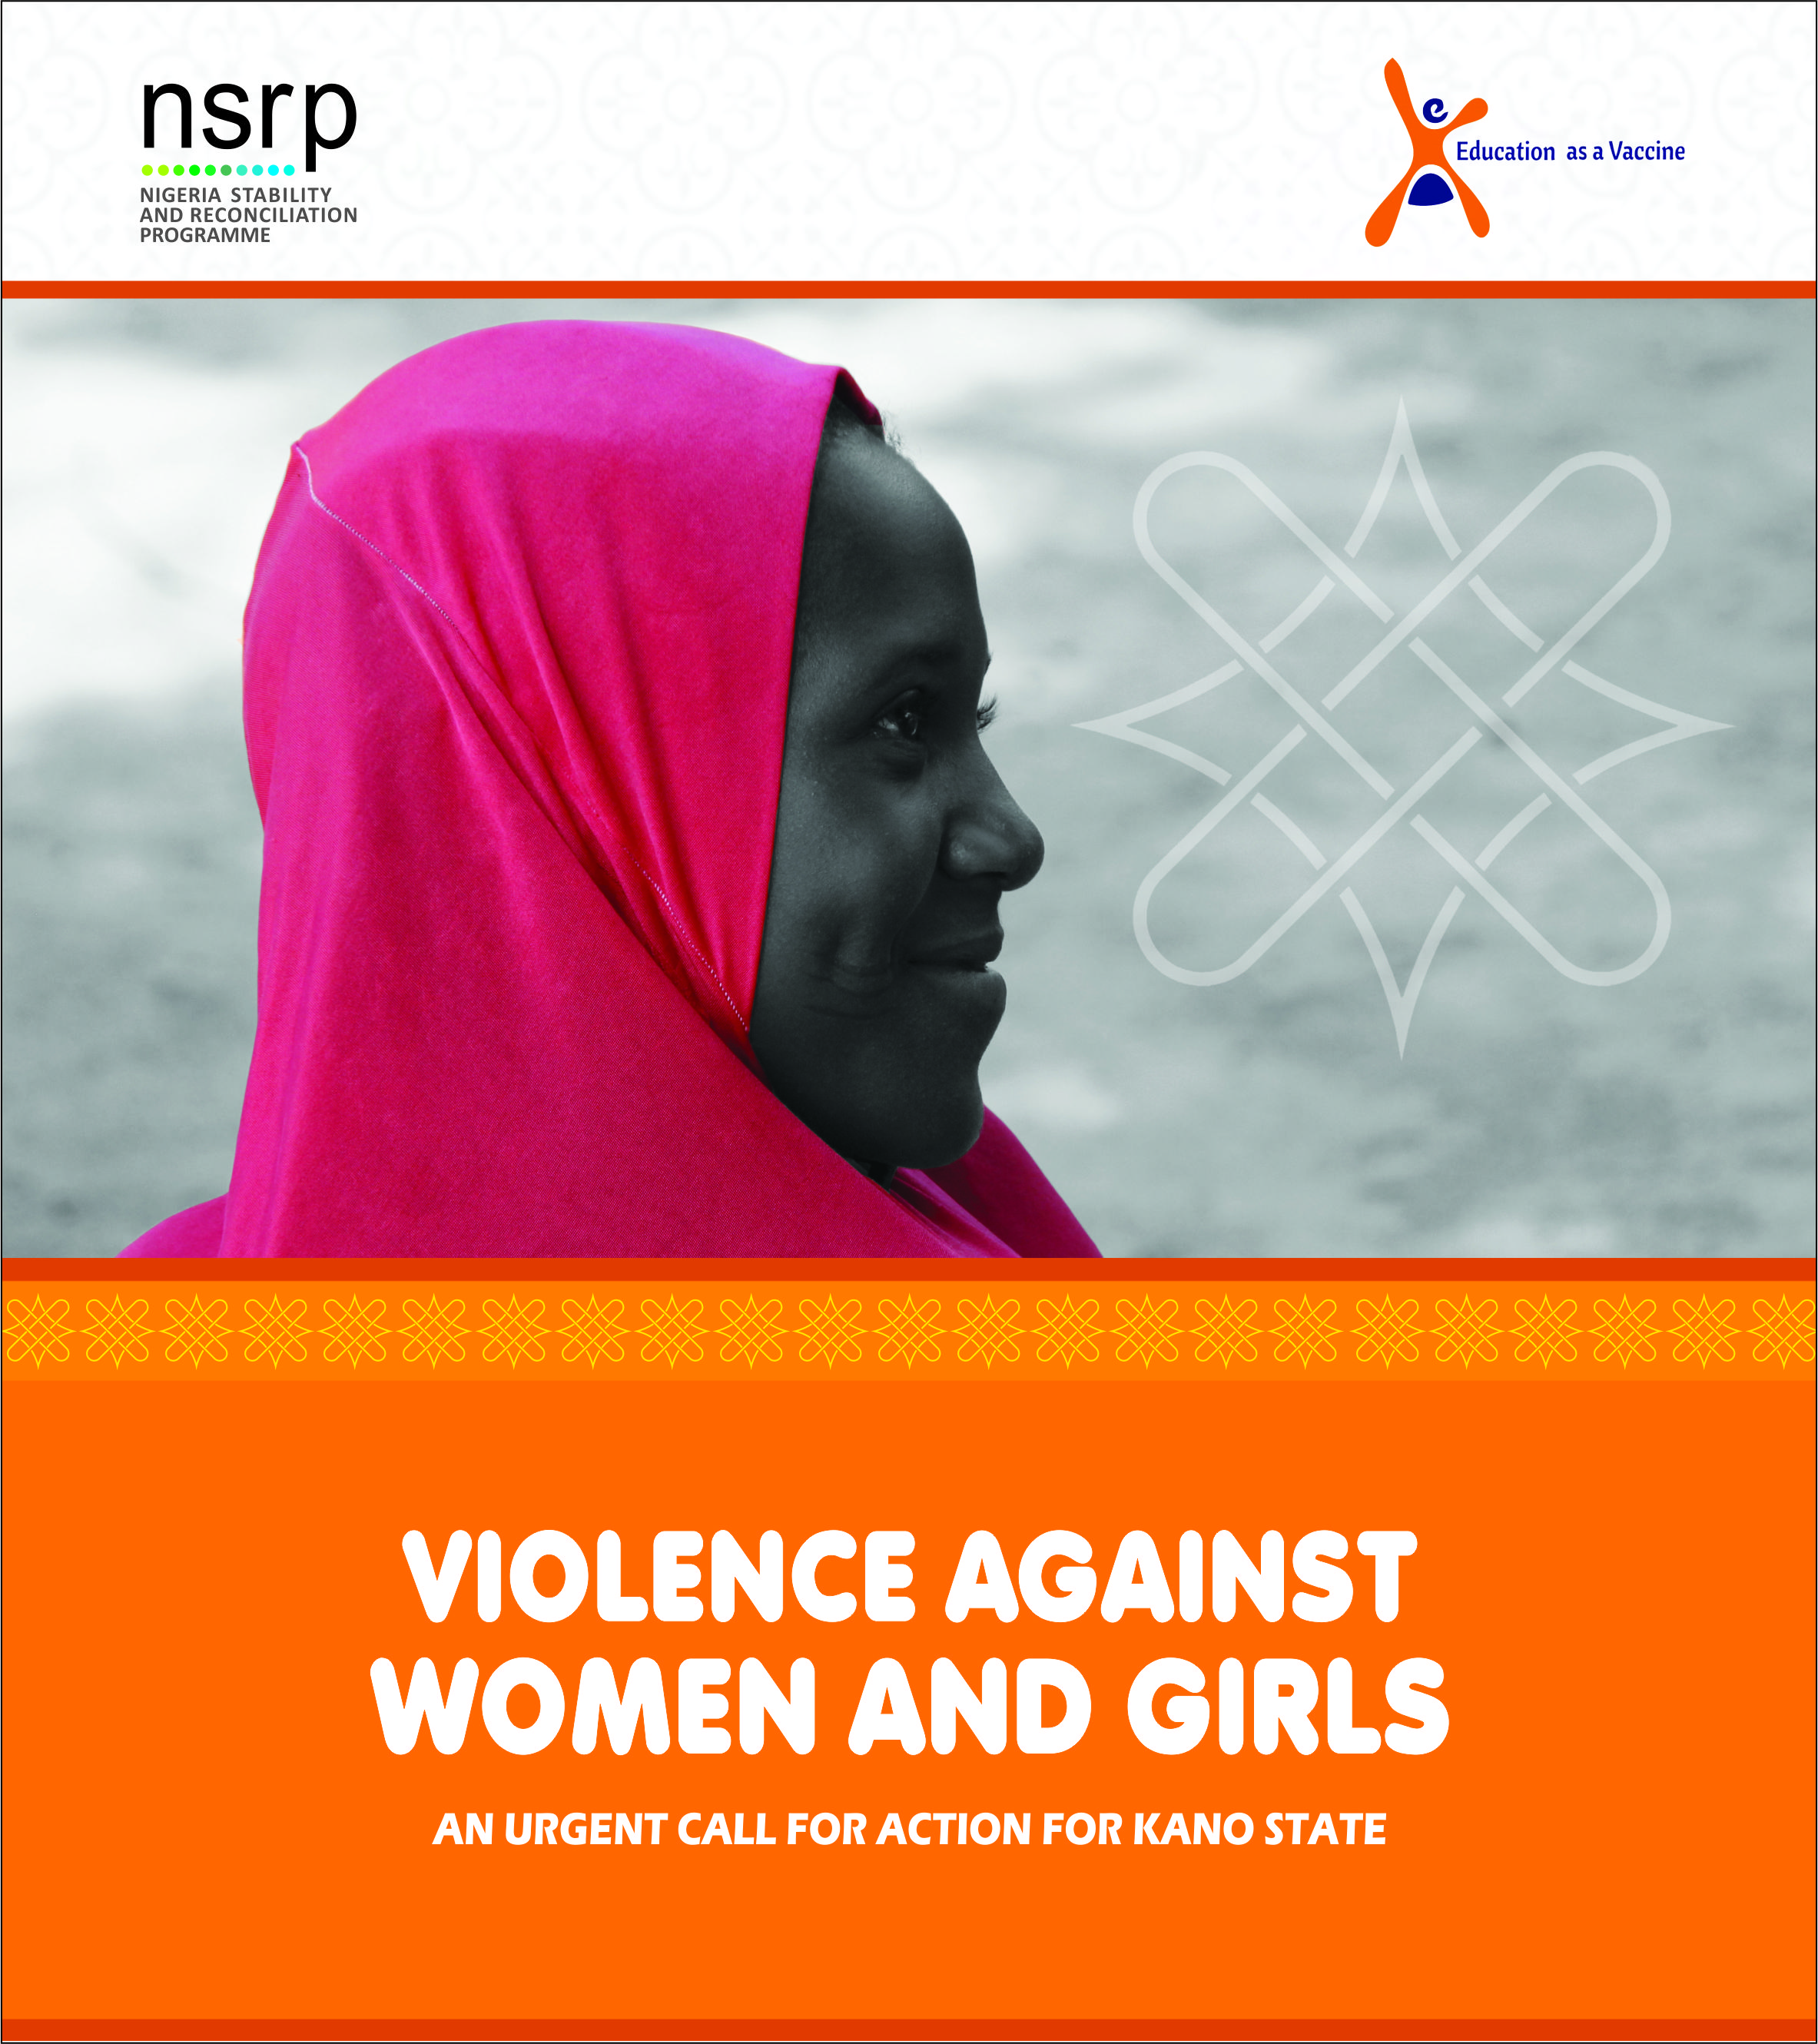 NSRP REPORT ON VIOLENCE AGAINST WOMEN AND GIRLS IN KANO